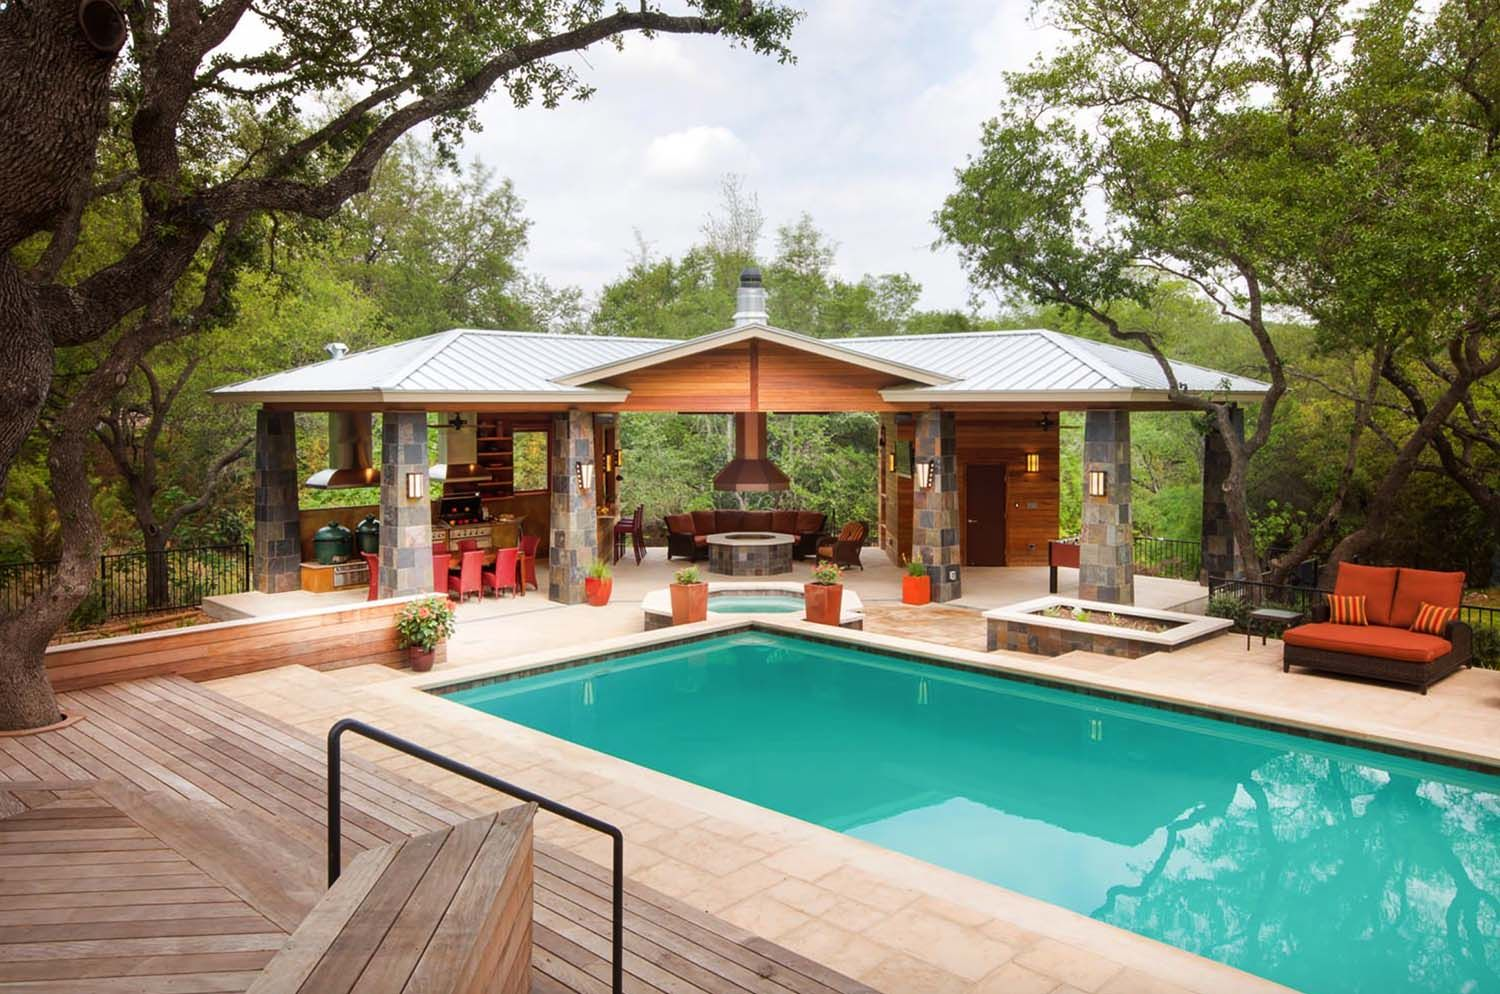 35 Brilliant And Inspiring Patio Ideas For Outdoor Living And